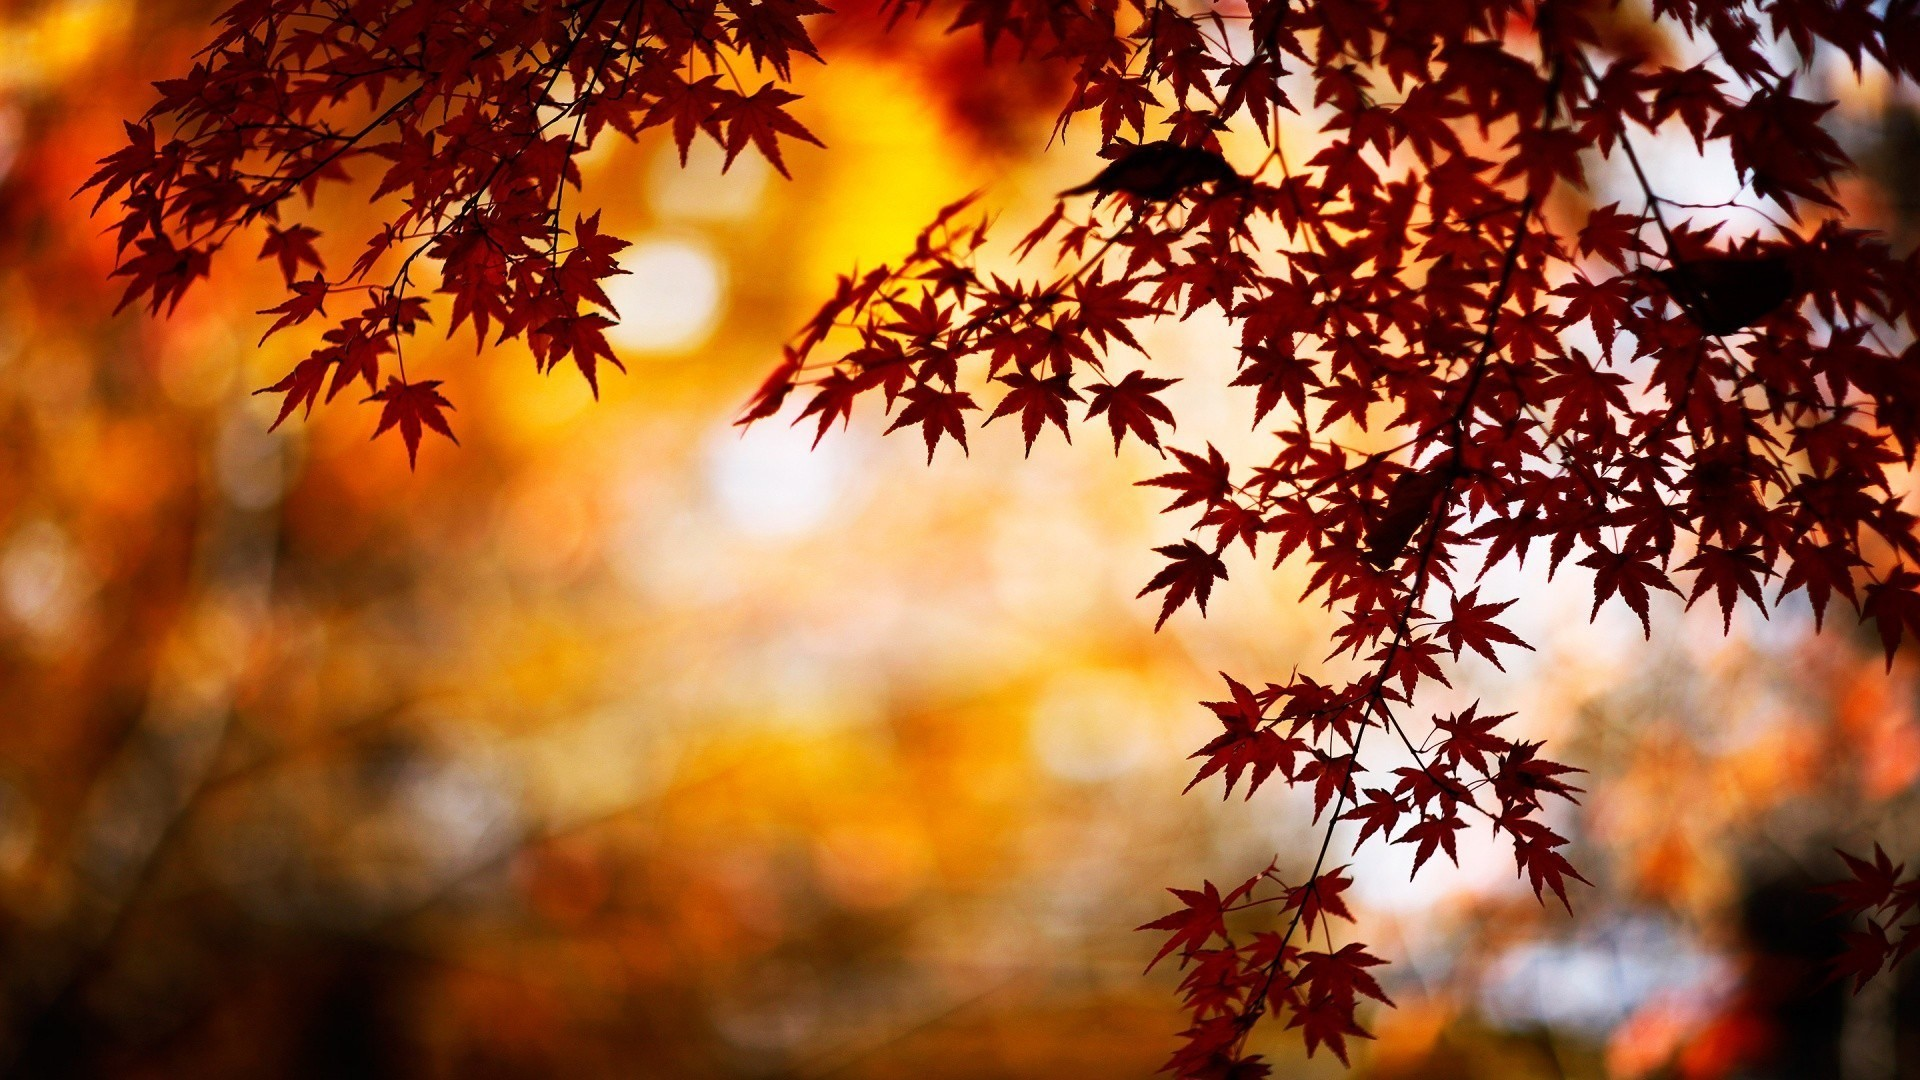 Res: 1920x1080,  Fall Leaves Wallpapers,  – Wallpapers PC Gallery for PC  & Mac, Laptop, Tablet, Mobile Phone